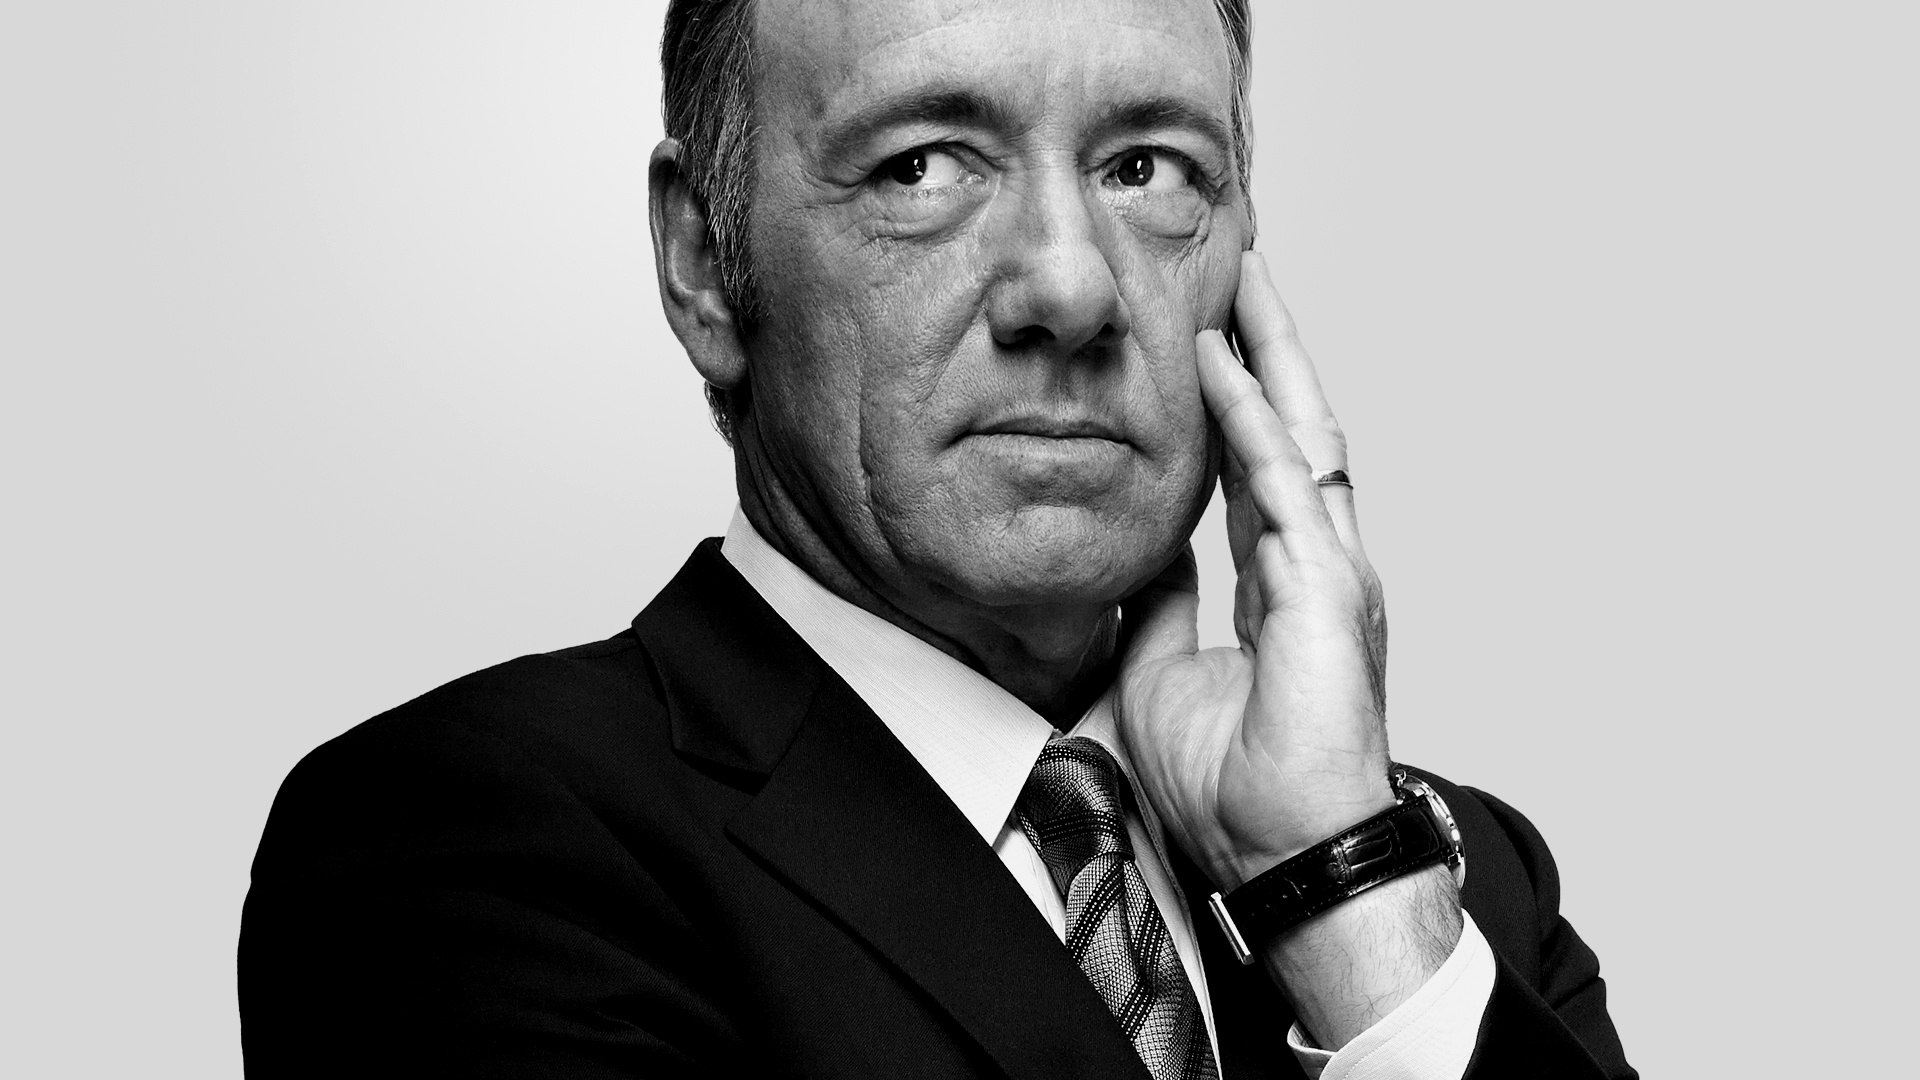 Kevin spacey wallpapers images photos pictures backgrounds - Spacey wallpaper ...